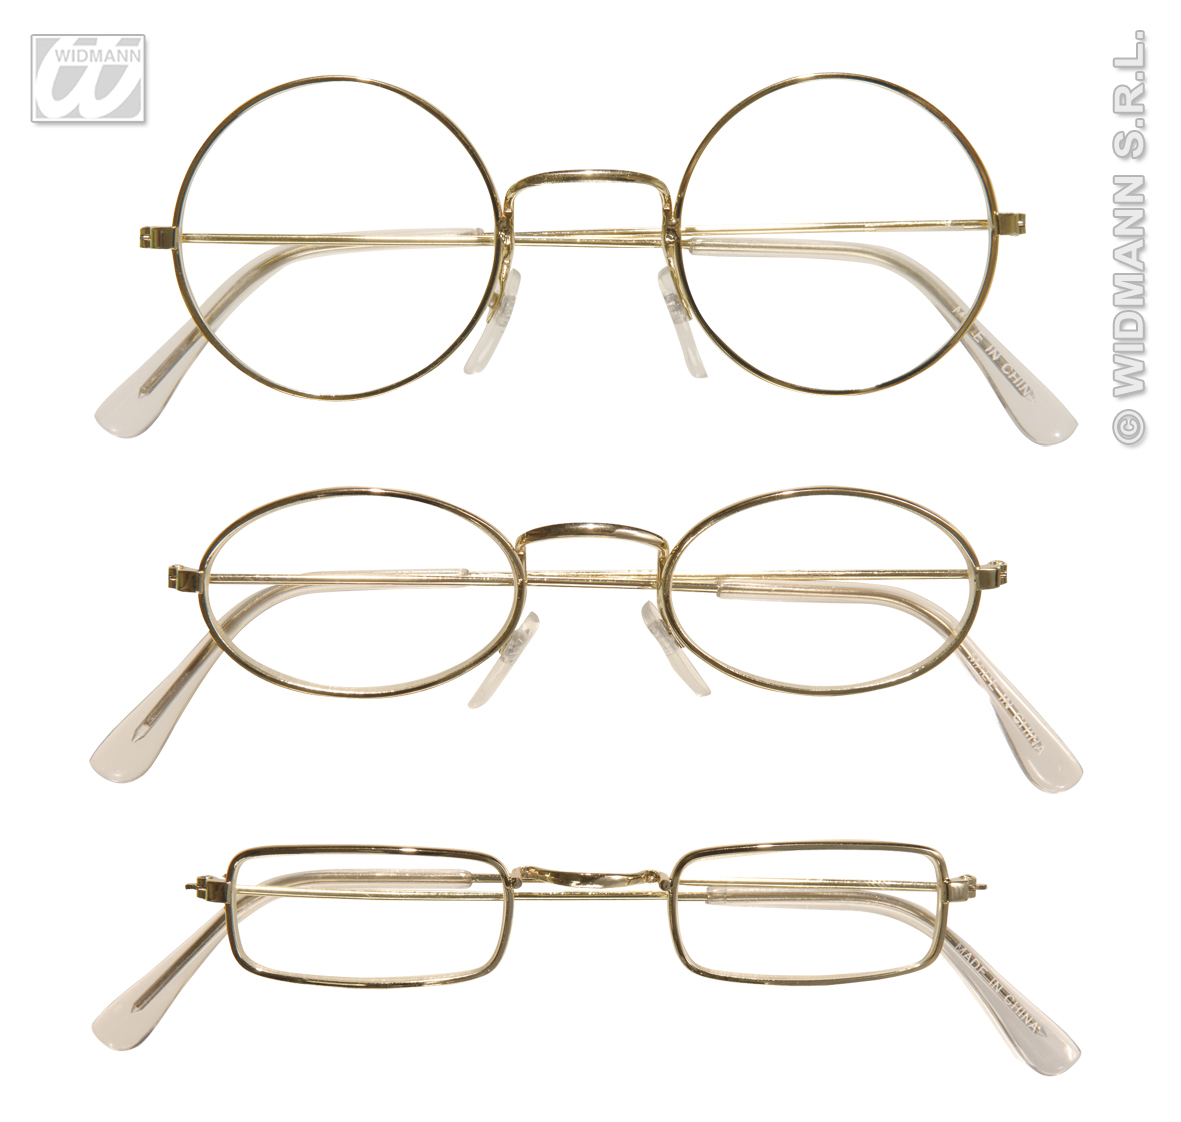 Brille NIckel, gold, Messing, rund, eckig, oval,Weihnachten, Zwerg,Oma  1823